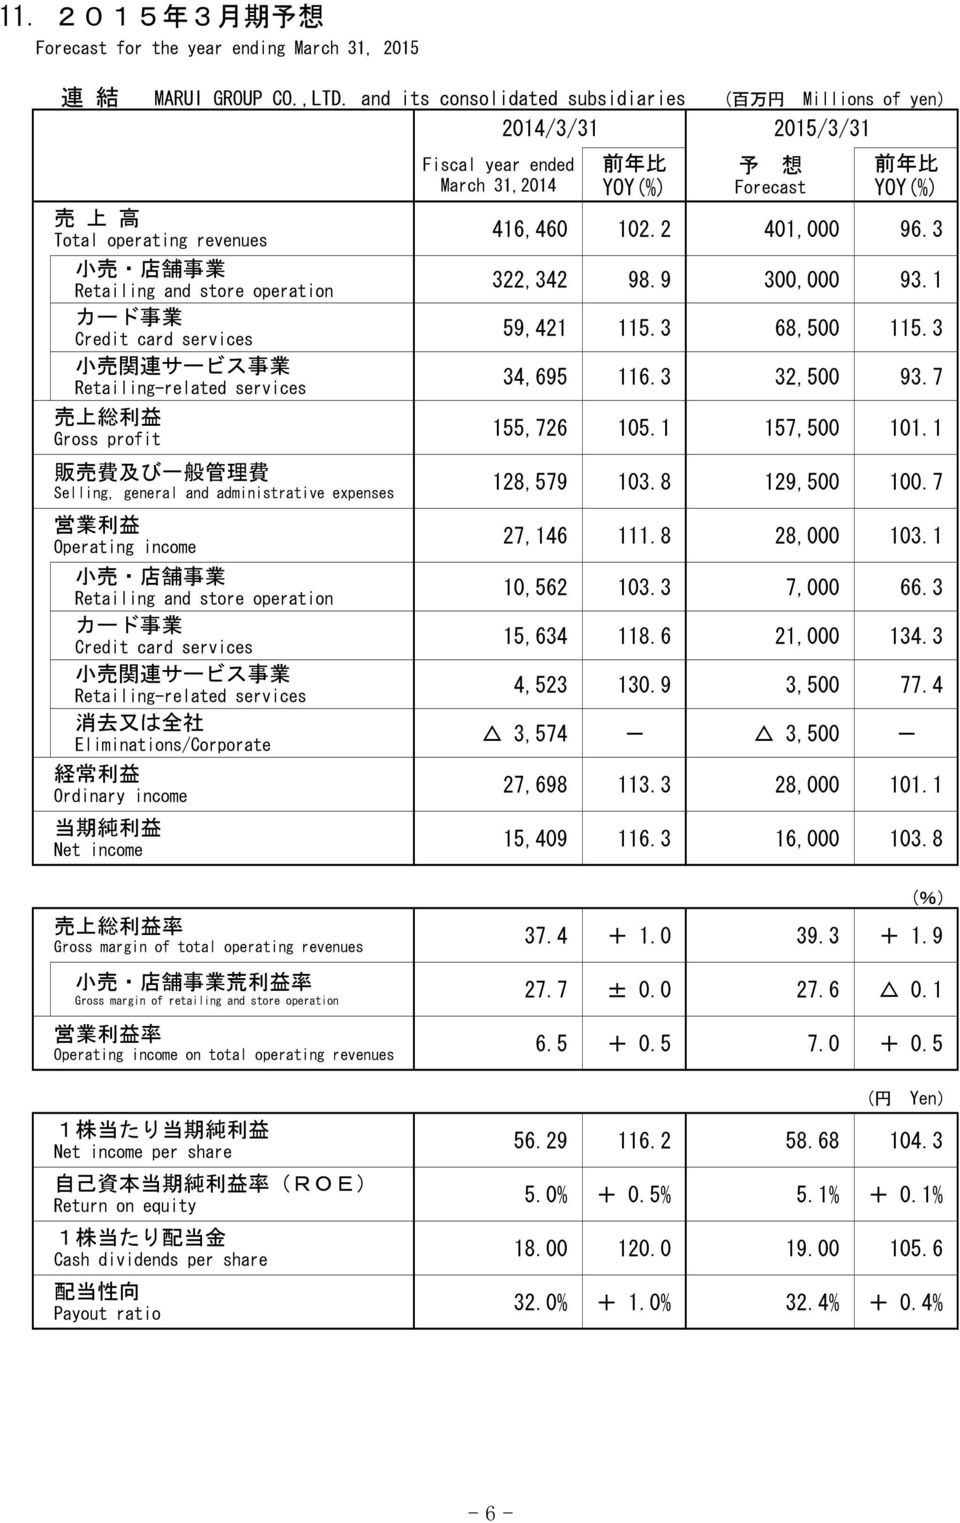 services 売 上 総 利 益 Gross profit 販 売 費 及 び 一 般 管 理 費 Selling, general and administrative expenses 小 売 店 舗 事 業 Retailing and store operation カード 事 業 Credit card services 小 売 関 連 サービス 事 業